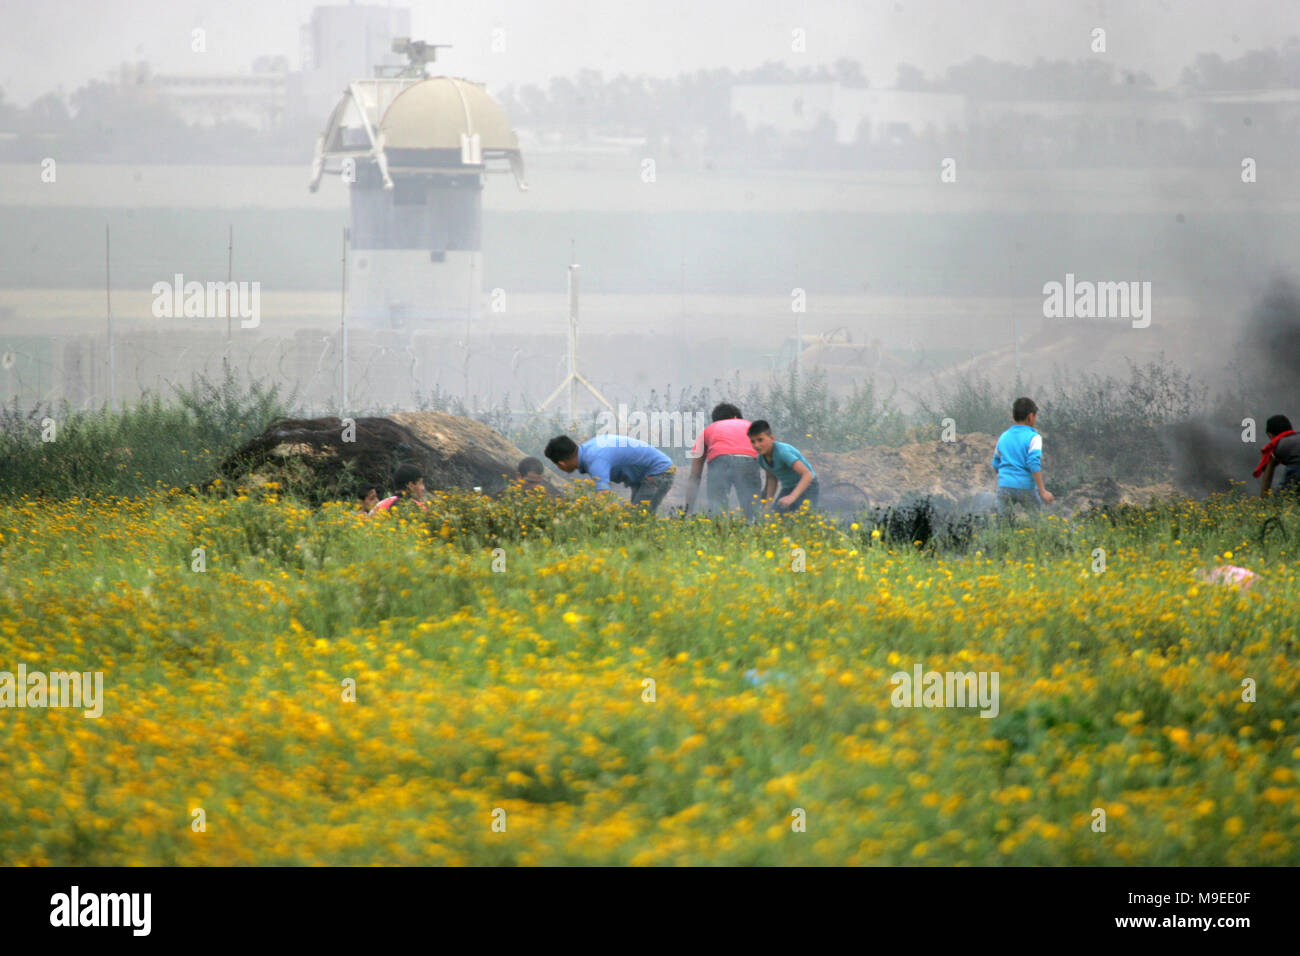 Gaza, Palestinian territories. 23rd march, 2018.   A Palestinian demonstrators hurls stones at Israeli troops during clashes with Israeli troops near  - Stock Image